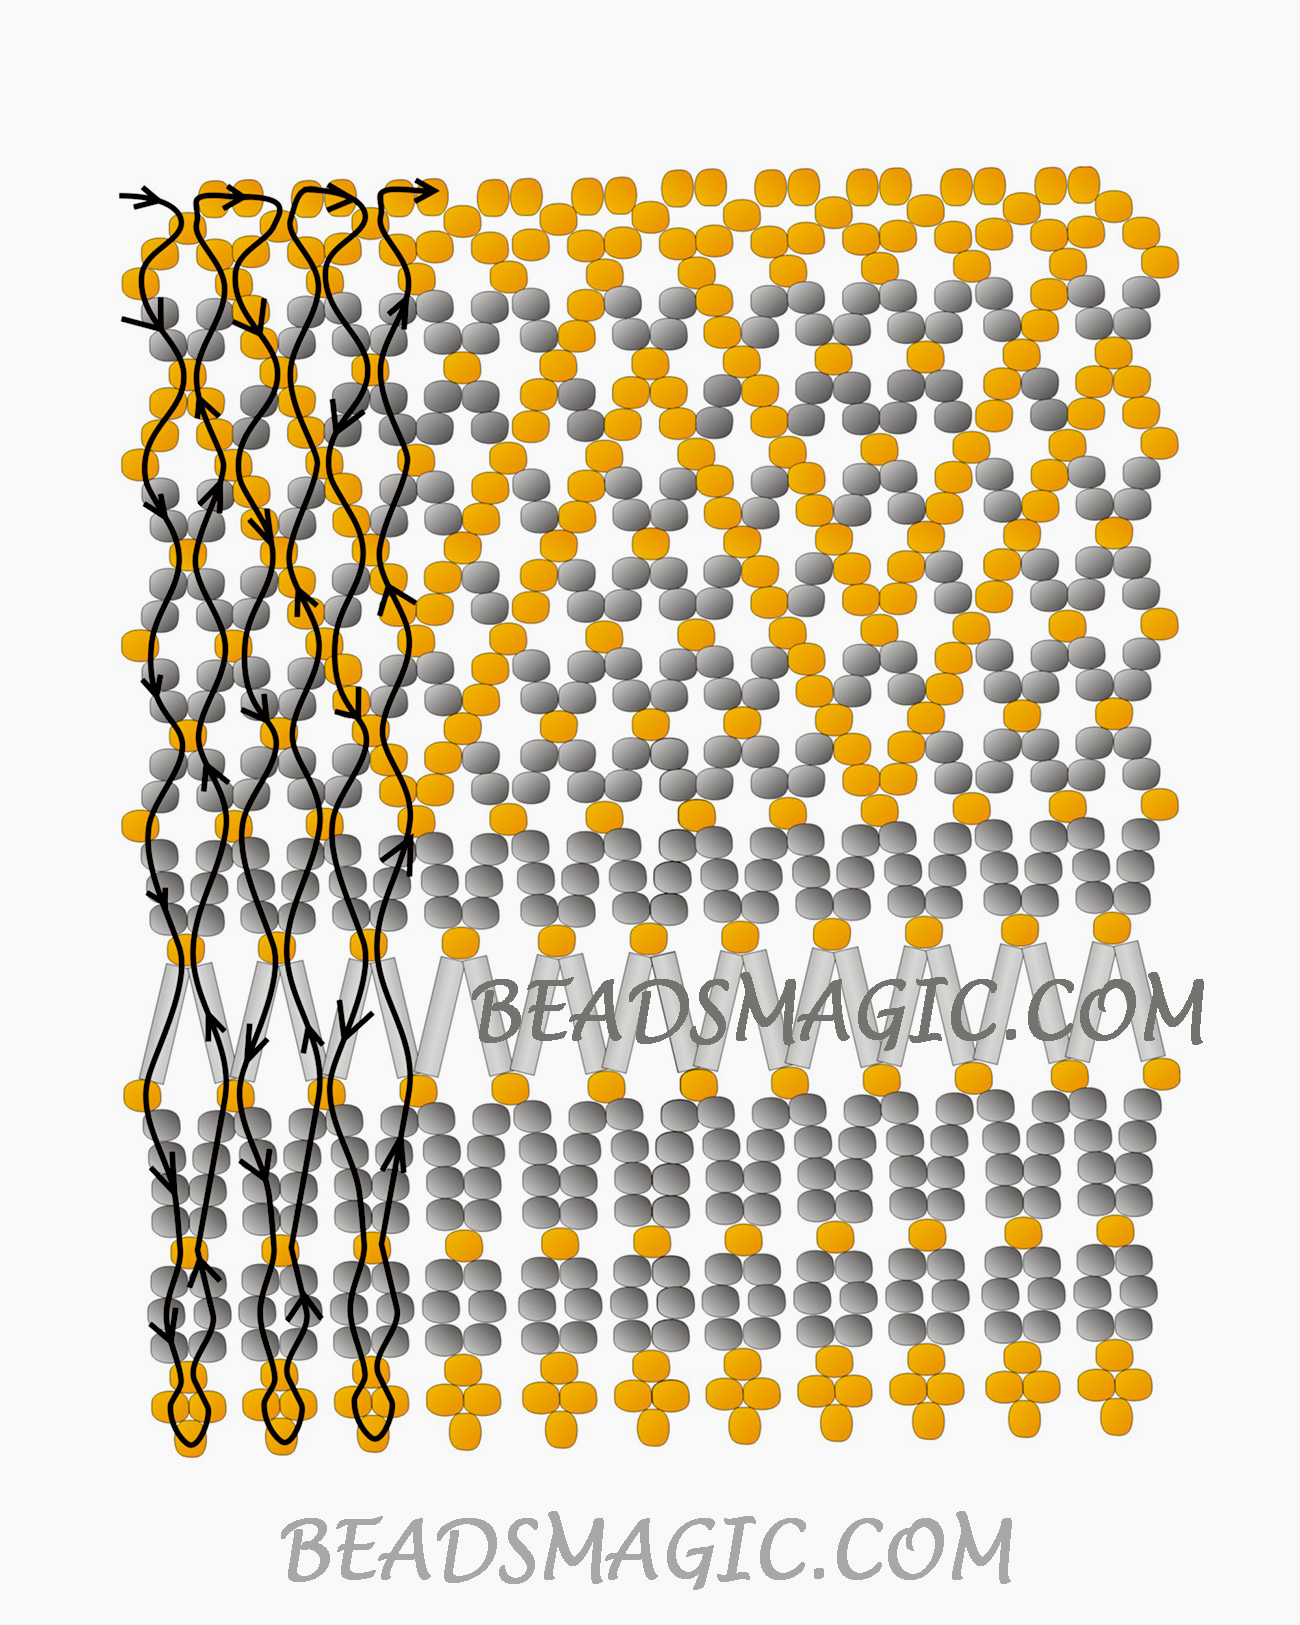 free-beading-tutorial-necklace-instructions-pattern-2-1